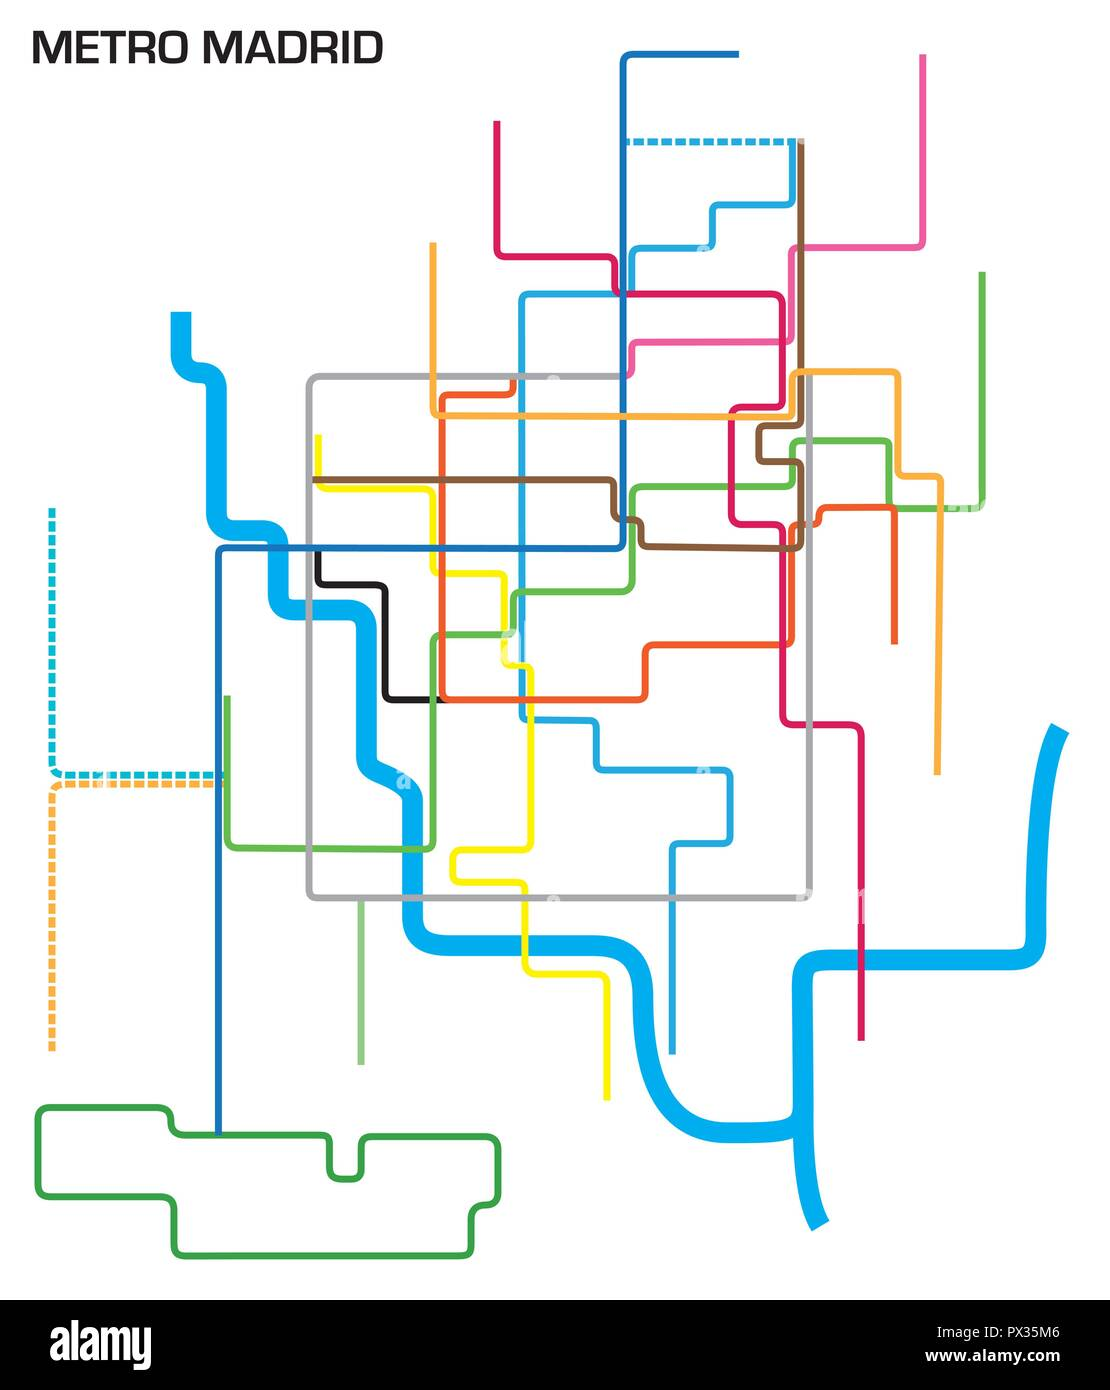 Subway Map For Madrid.Vector Illustration Of The Madrid Metro Map Stock Vector Art